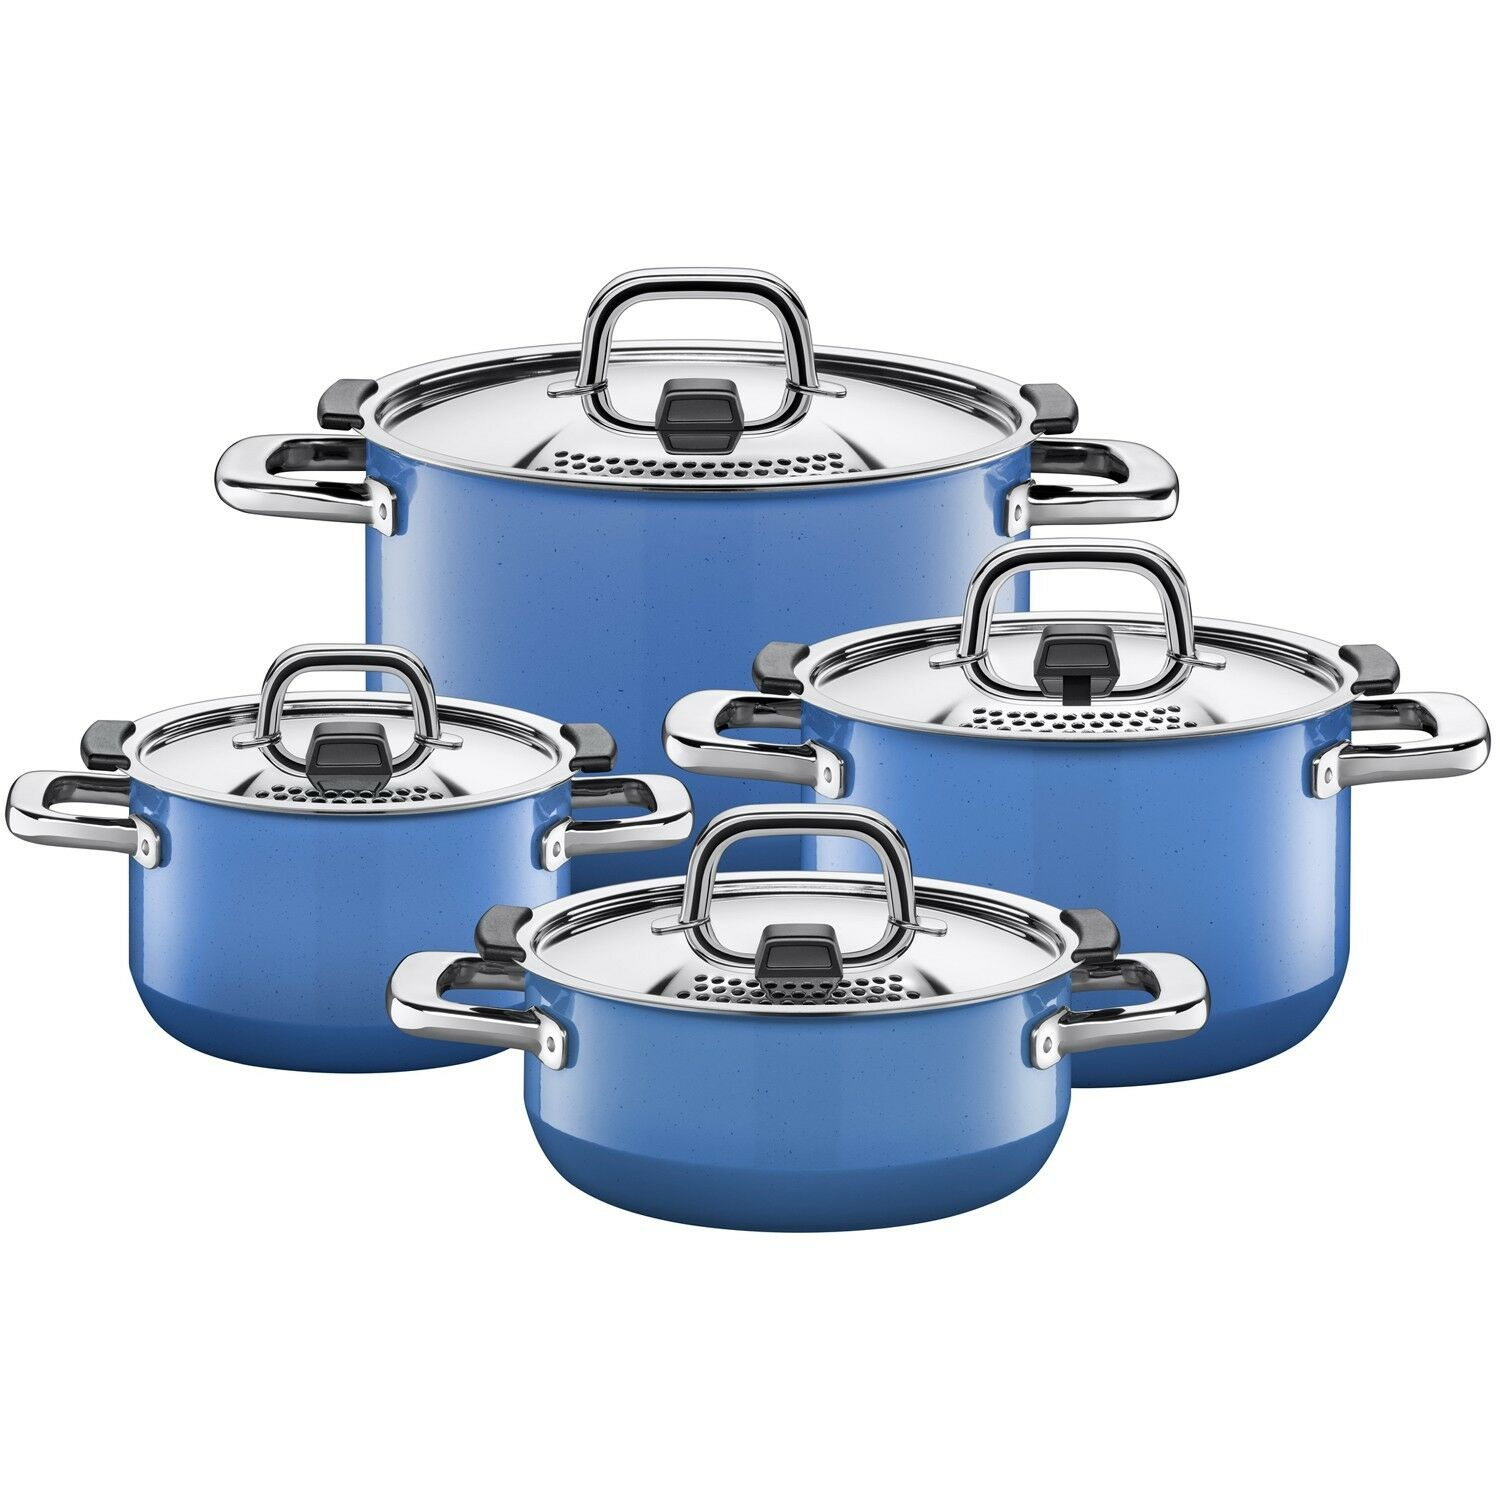 wmf silit nature 8 piece cookware set nature blue made in germany picclick ca. Black Bedroom Furniture Sets. Home Design Ideas